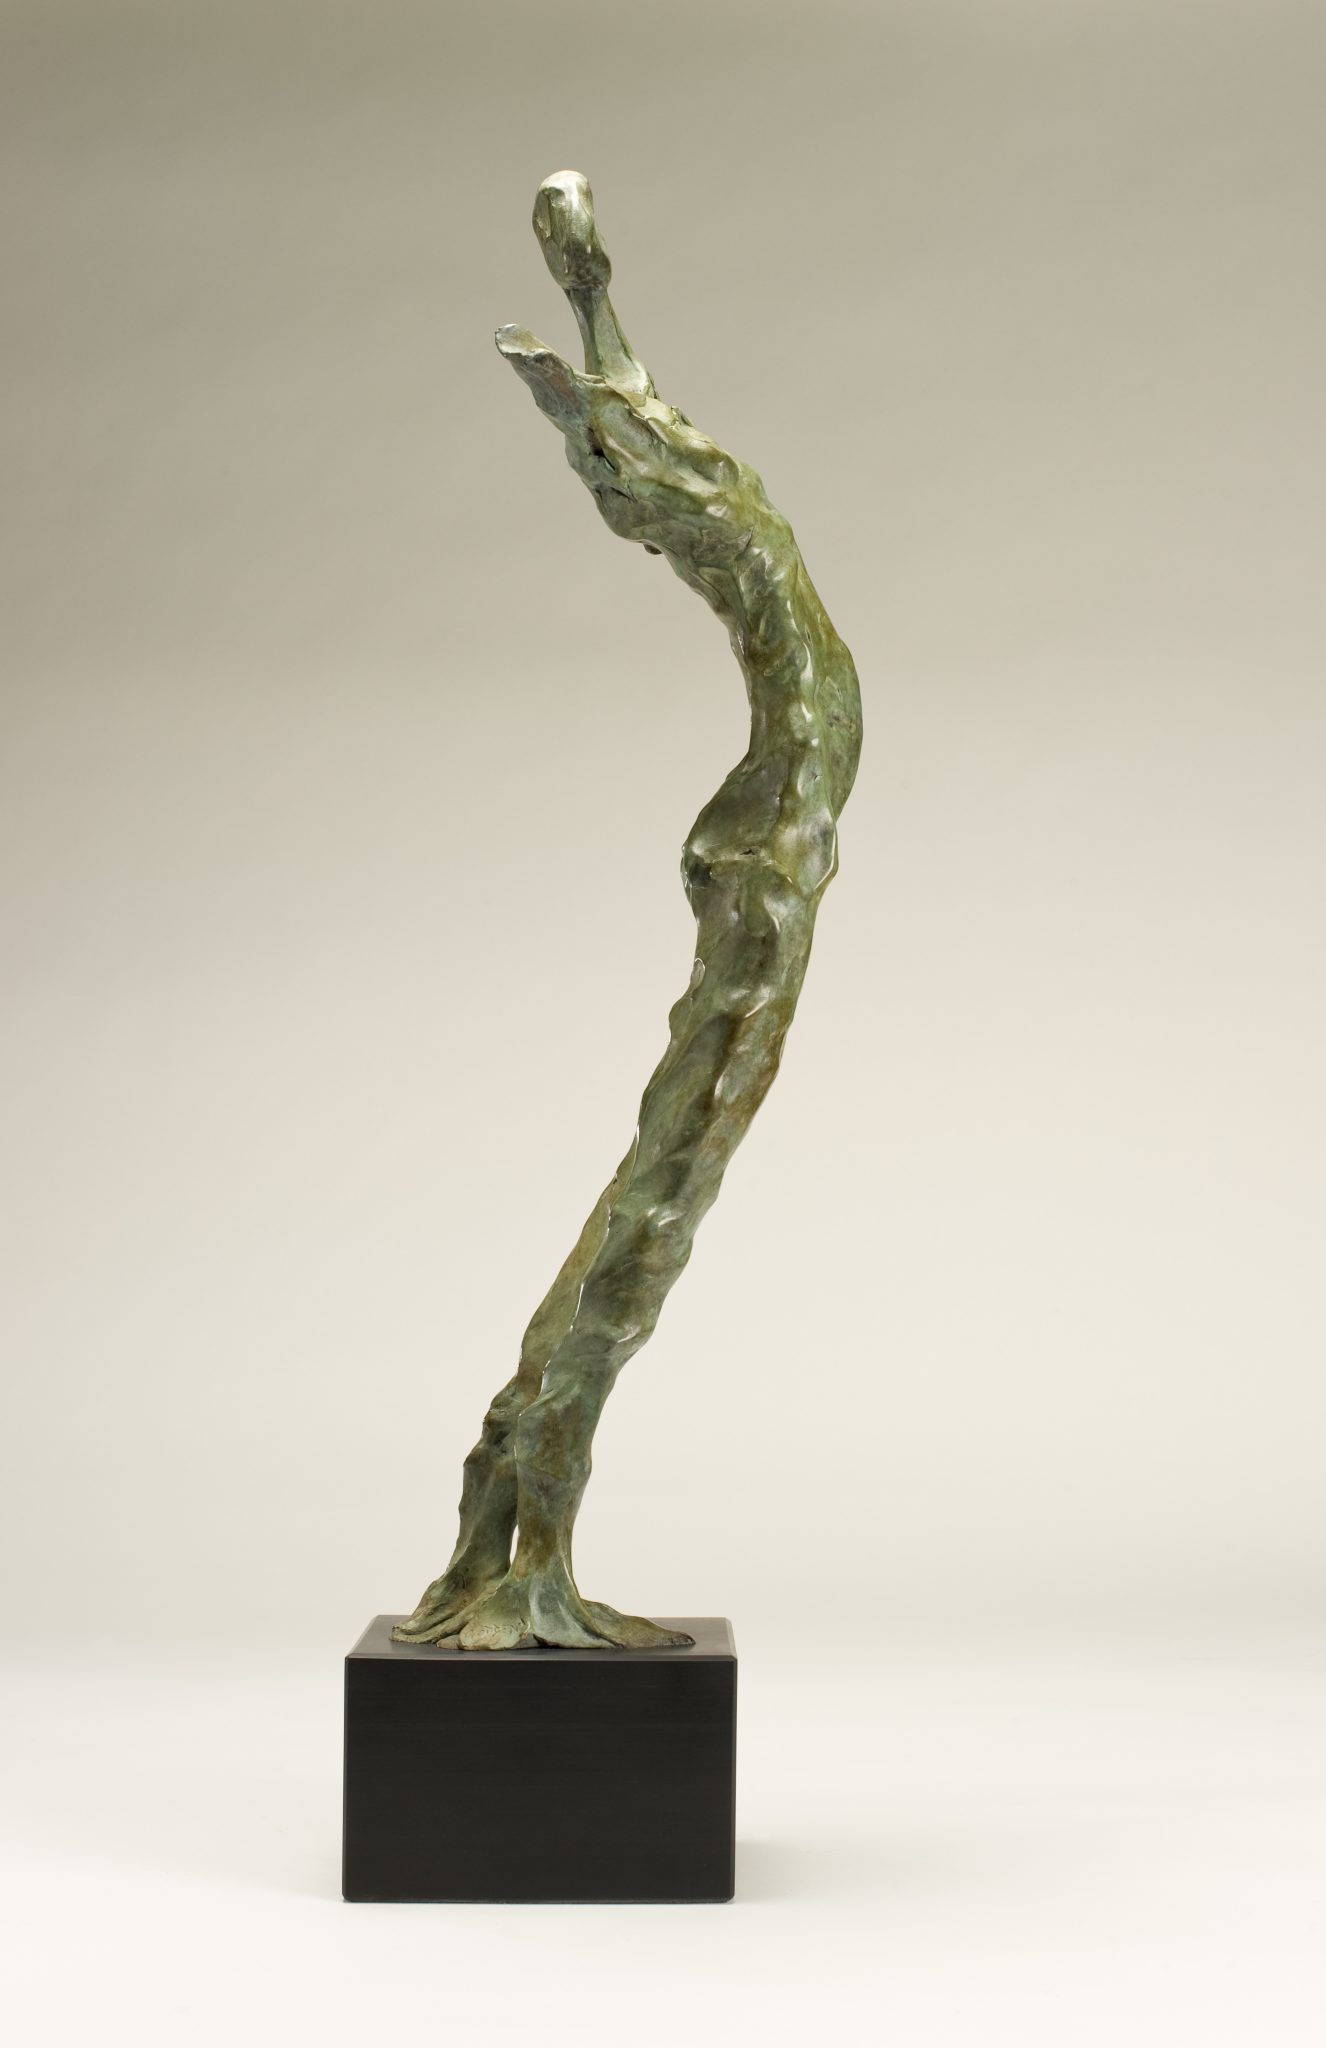 Arche Ossulaire. Bronze figurative sculpture